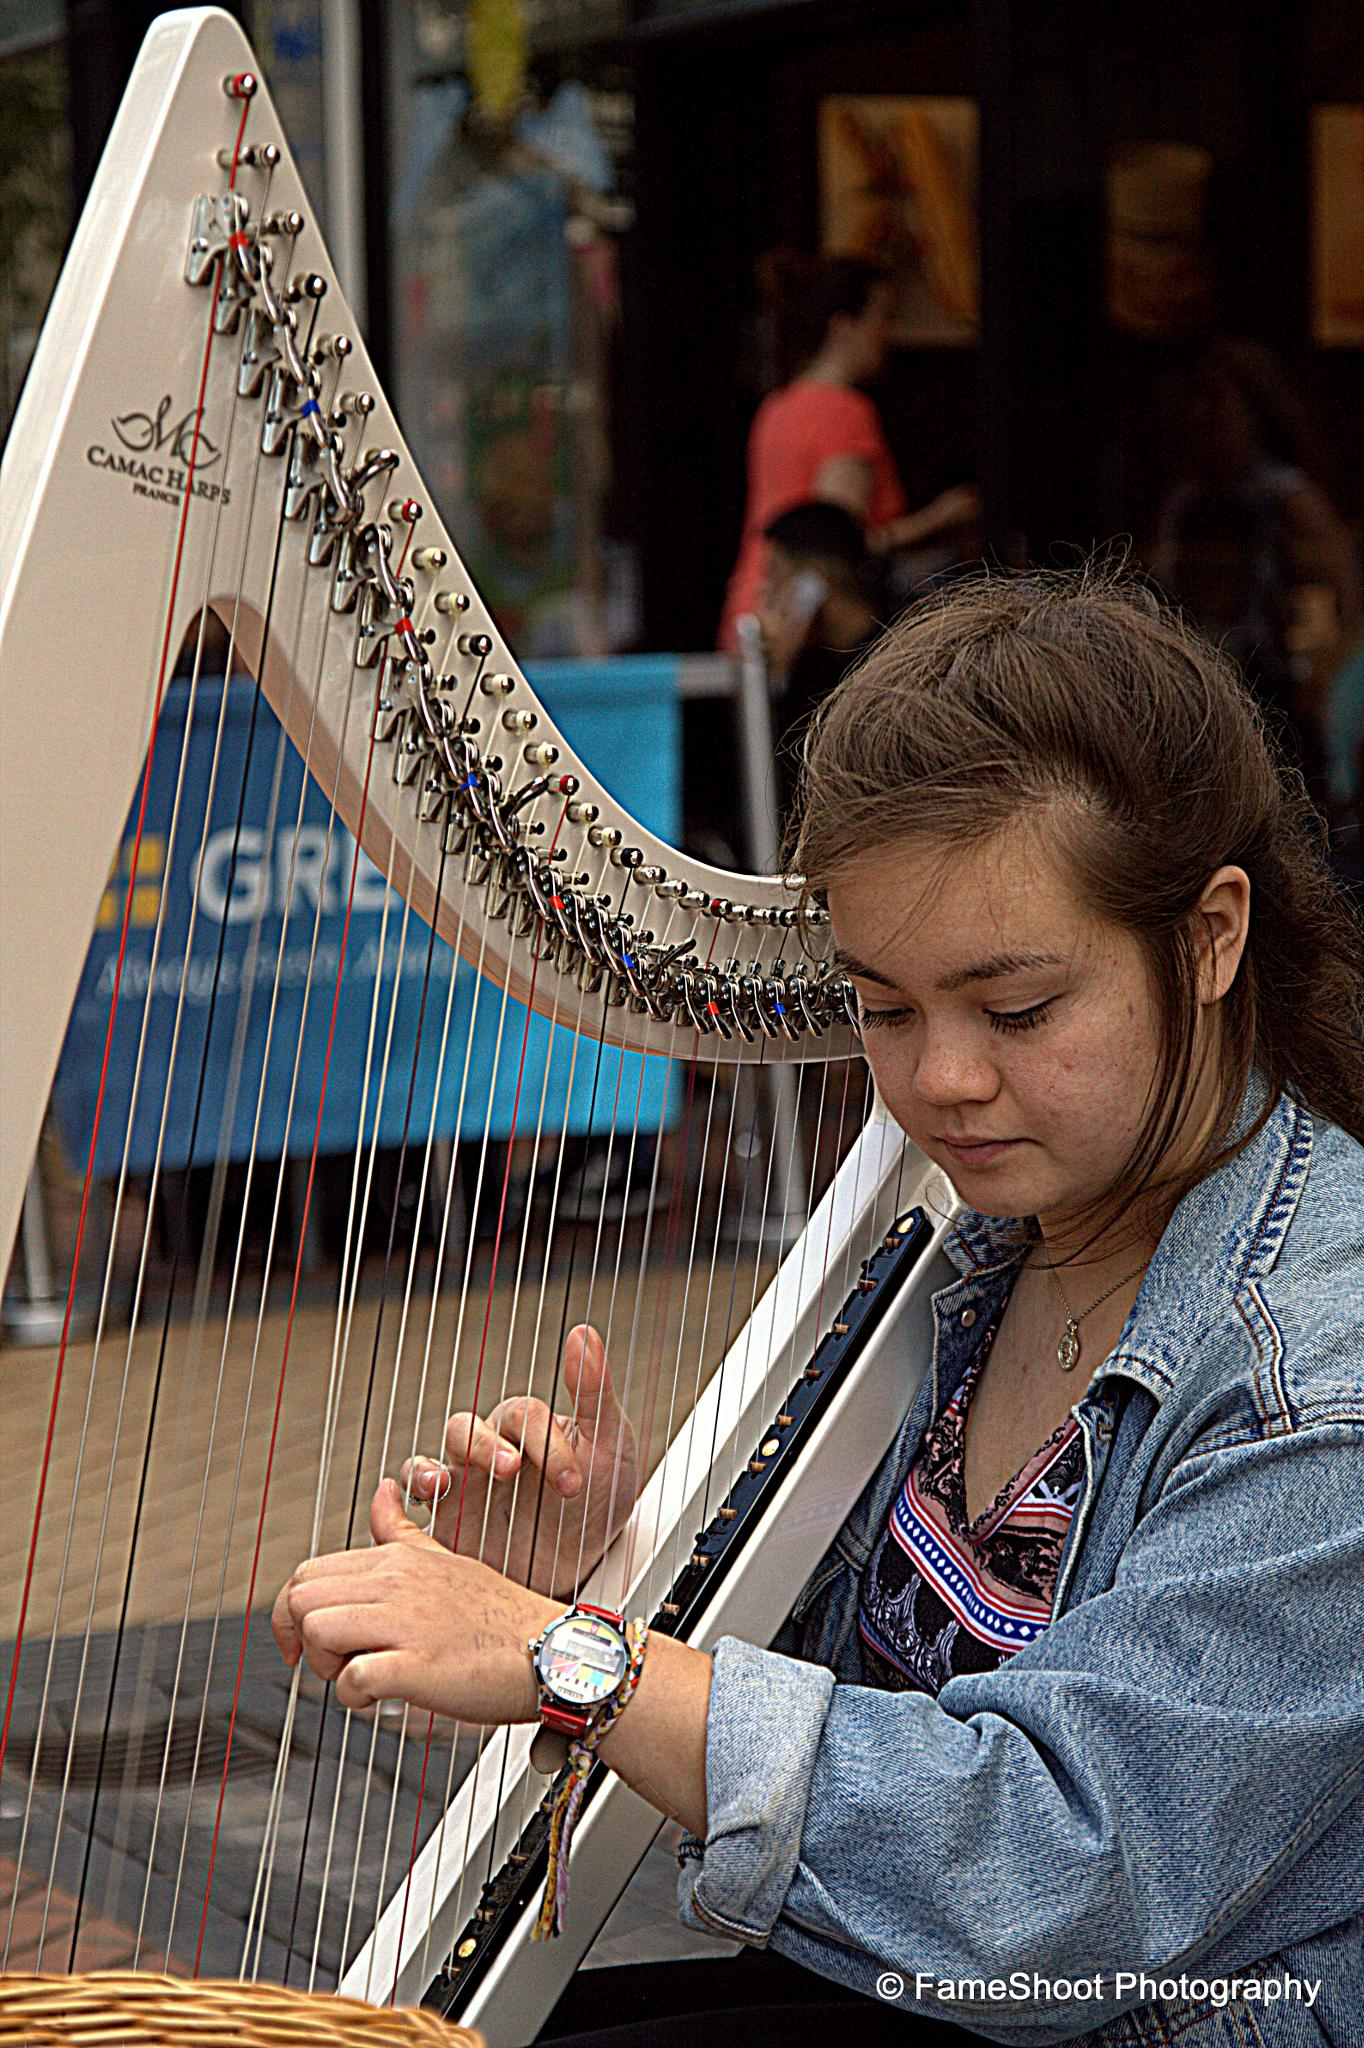 Street harp player  by Fame Shoot Photography